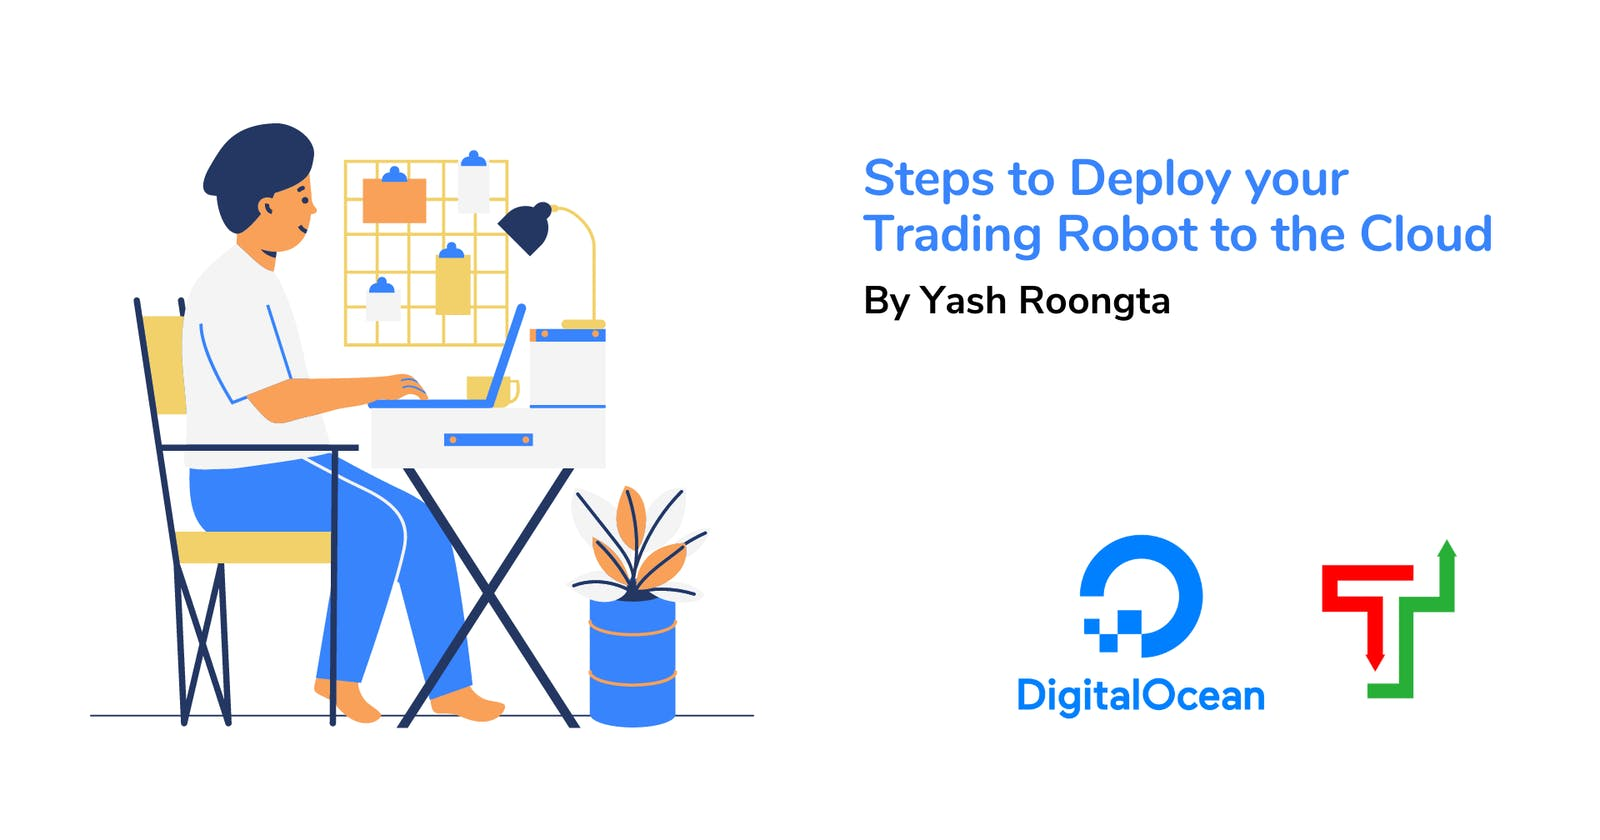 Steps to Deploy your Trading Robot to the Cloud